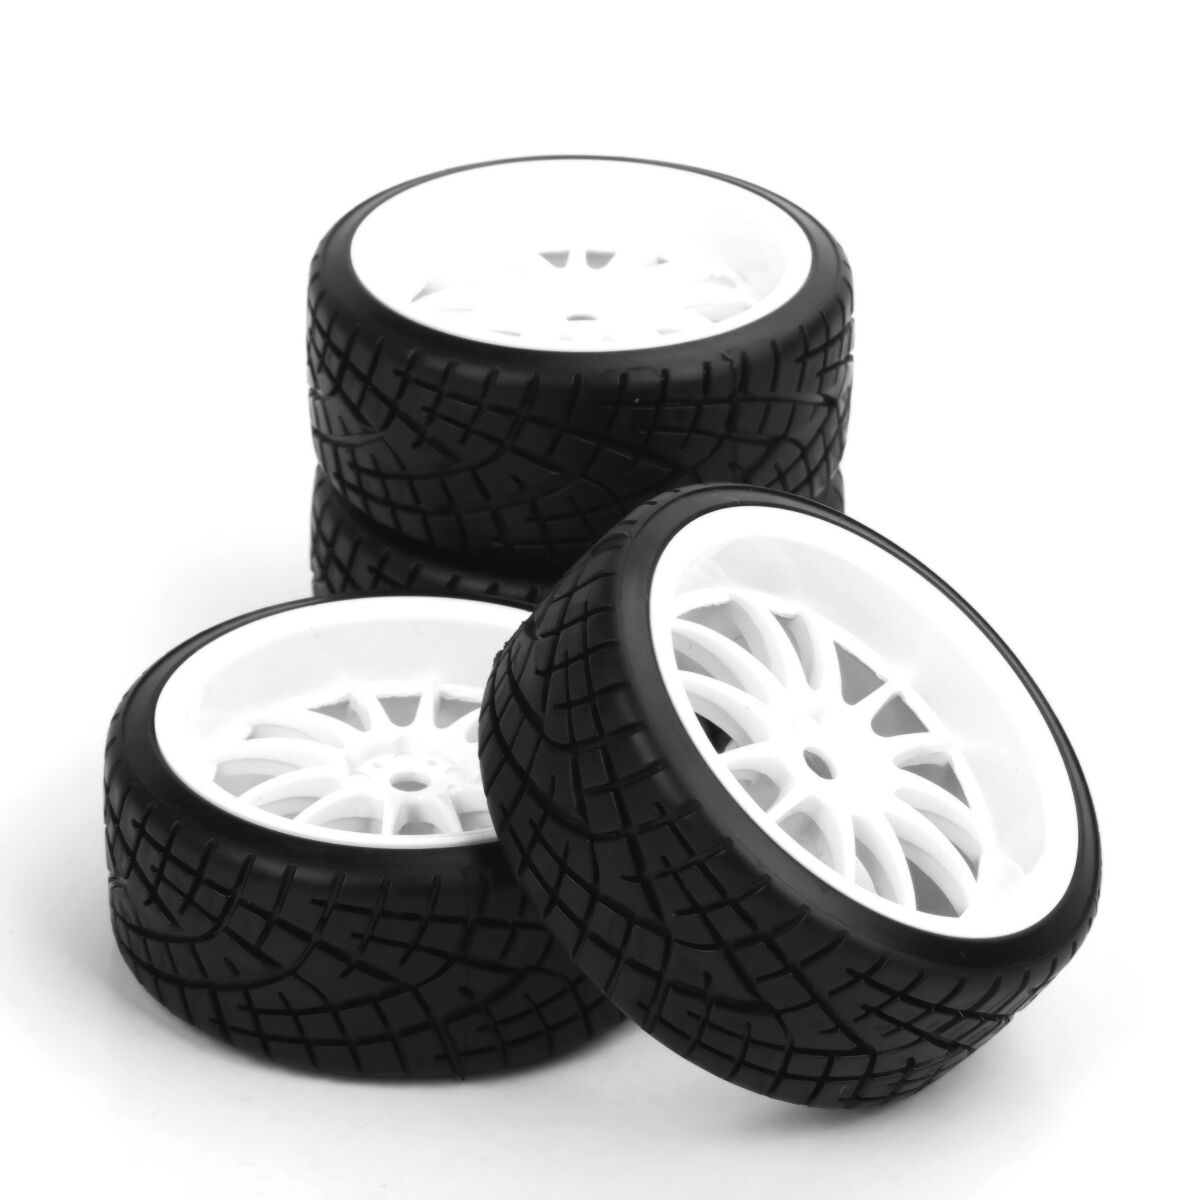 ARC0151 4Pcs <font><b>RC</b></font> Car Drift Tire <font><b>Wheel</b></font> Rim <font><b>Set</b></font> For HSP HPI Racing 1:10 <font><b>RC</b></font> Car 12mm Hex PP0290/069A Tires <font><b>Wheel</b></font> image